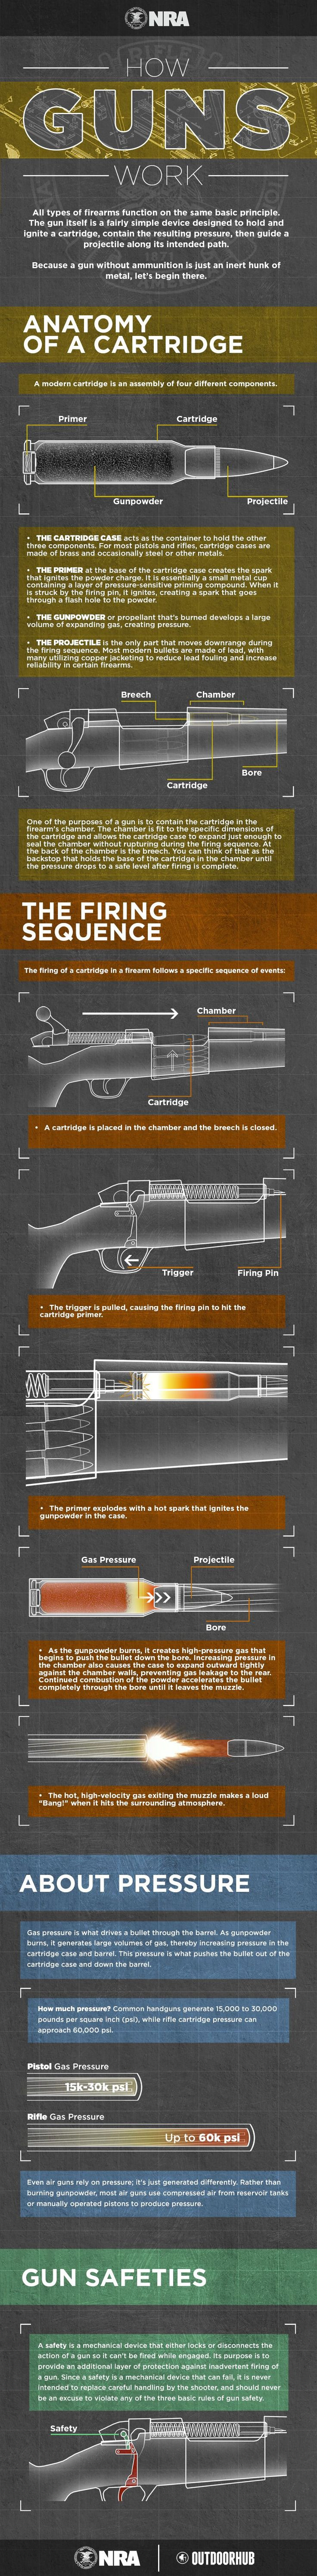 NRA How Guns Work Infographic